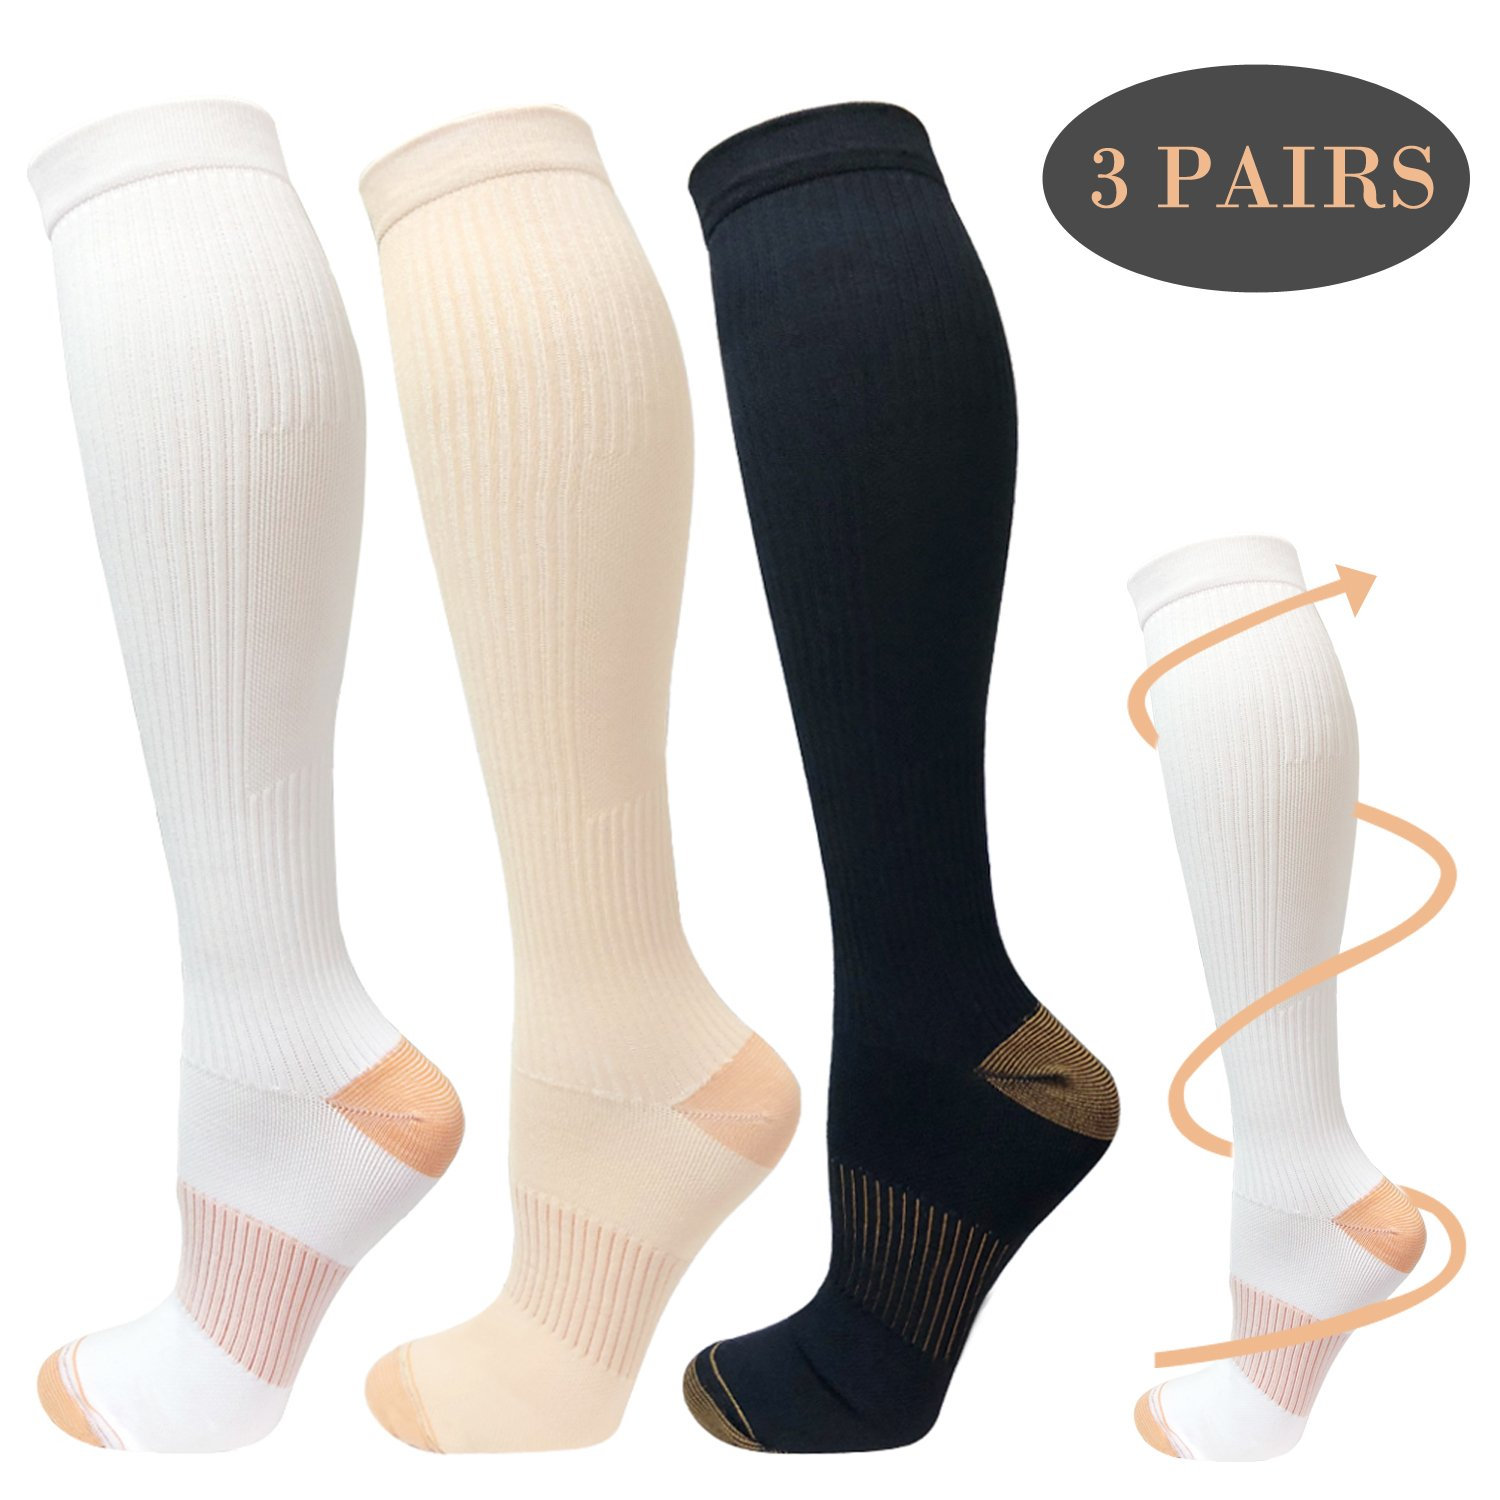 Copper Compression Socks For Men&Women -3 Pairs - Best Recovery Support Socks For Running,Athletic,Medical,Pregnancy and Travel -15-20mmHg (Style 1, L/XL)